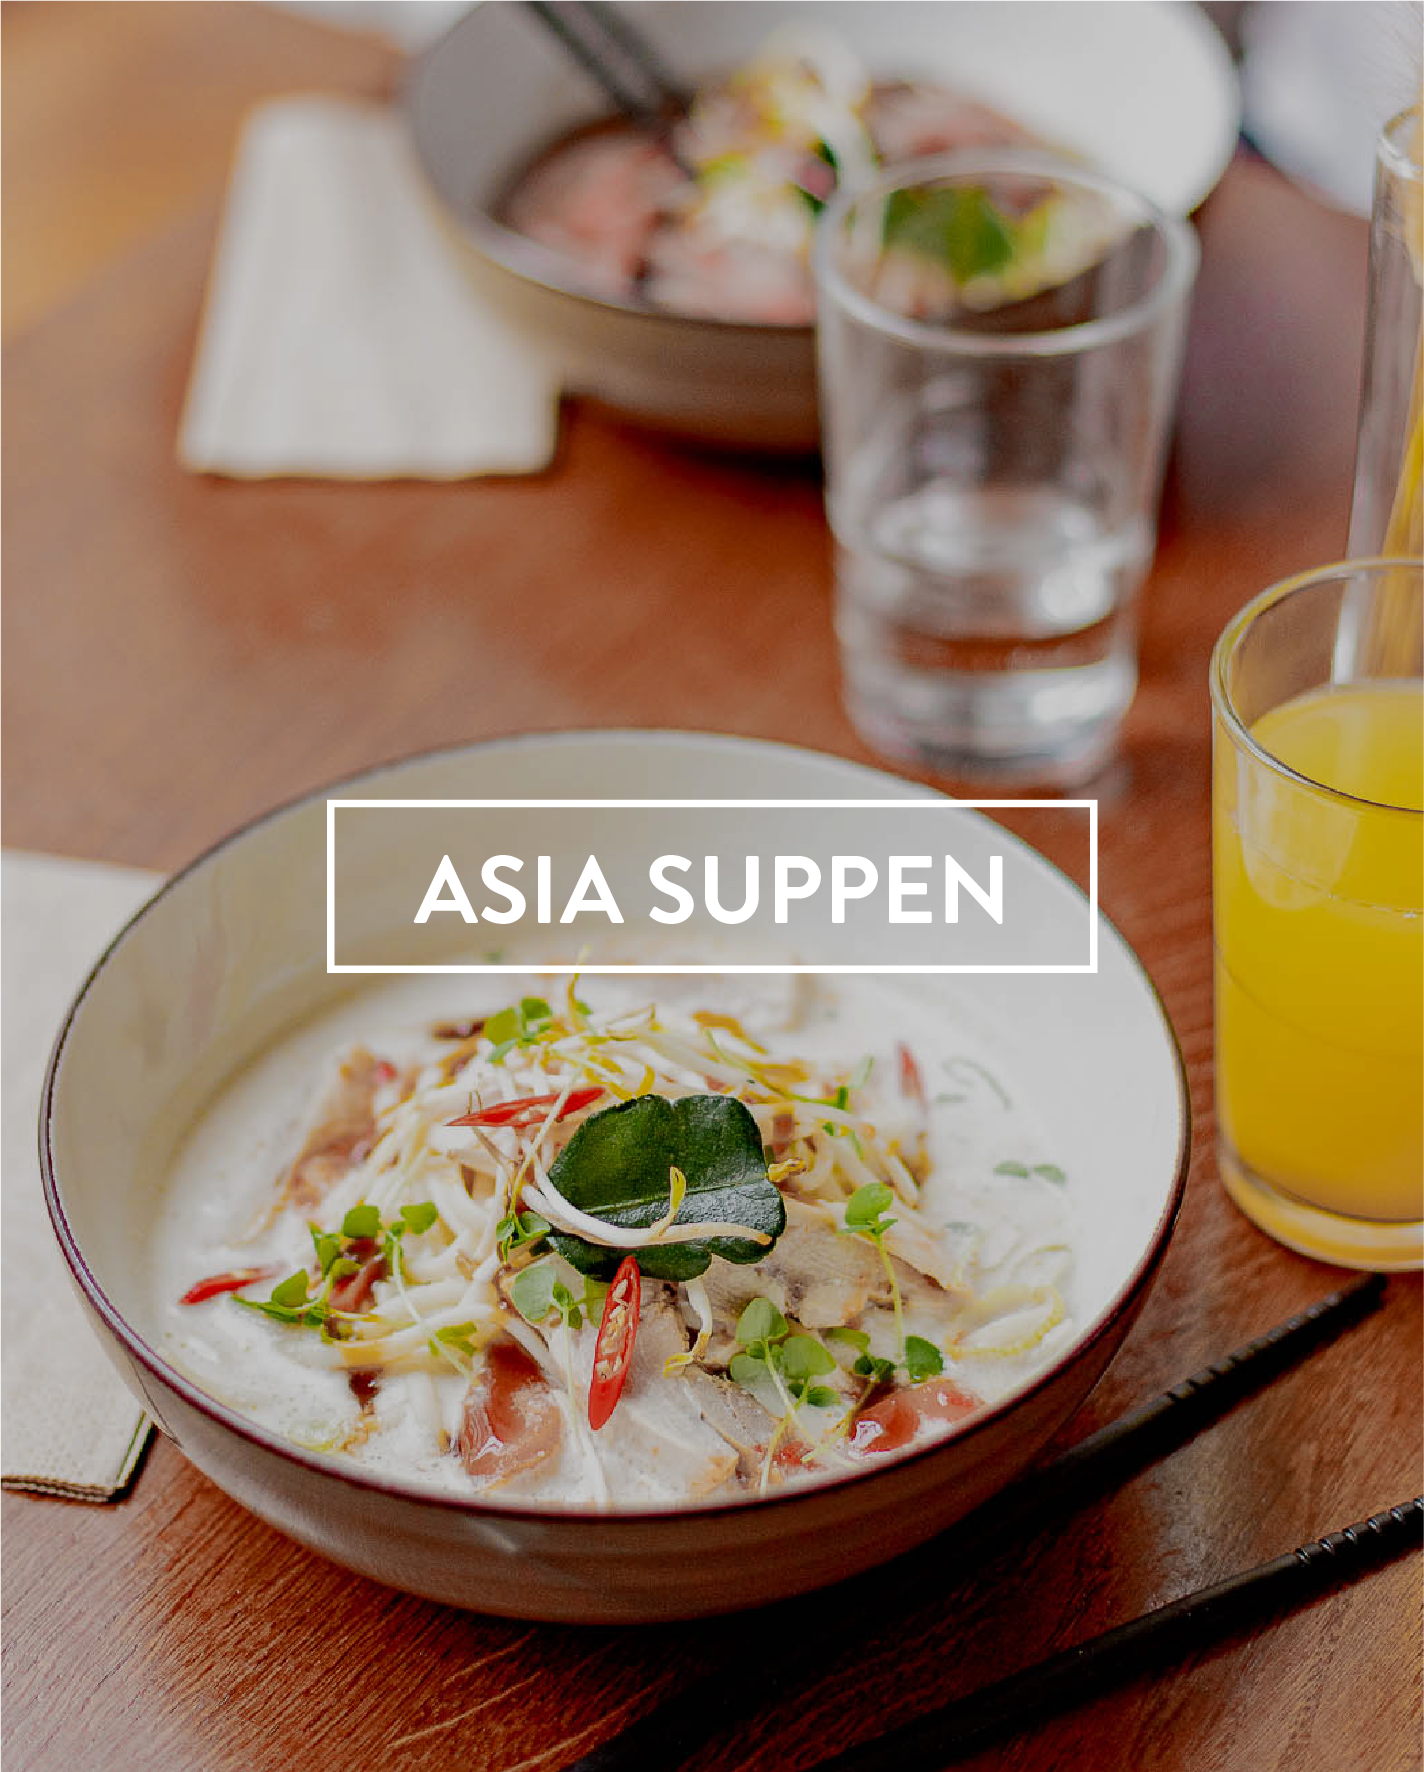 Asia Suppen